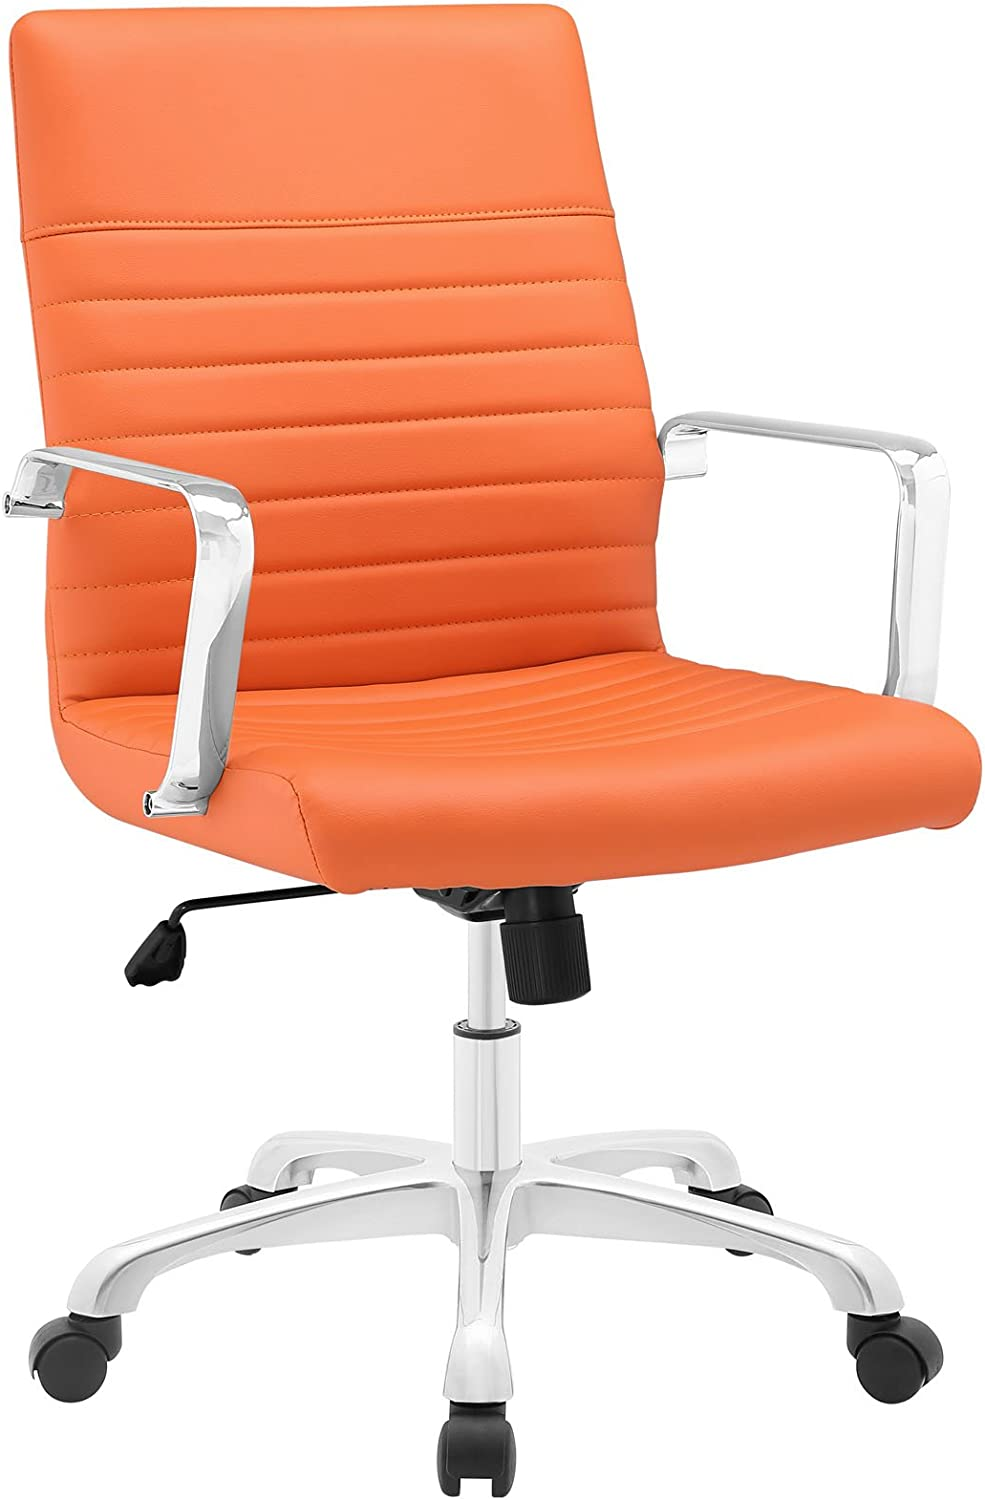 Modway MO-EEI-1534-ORA Finesse Mid Back Office Chair, Orange